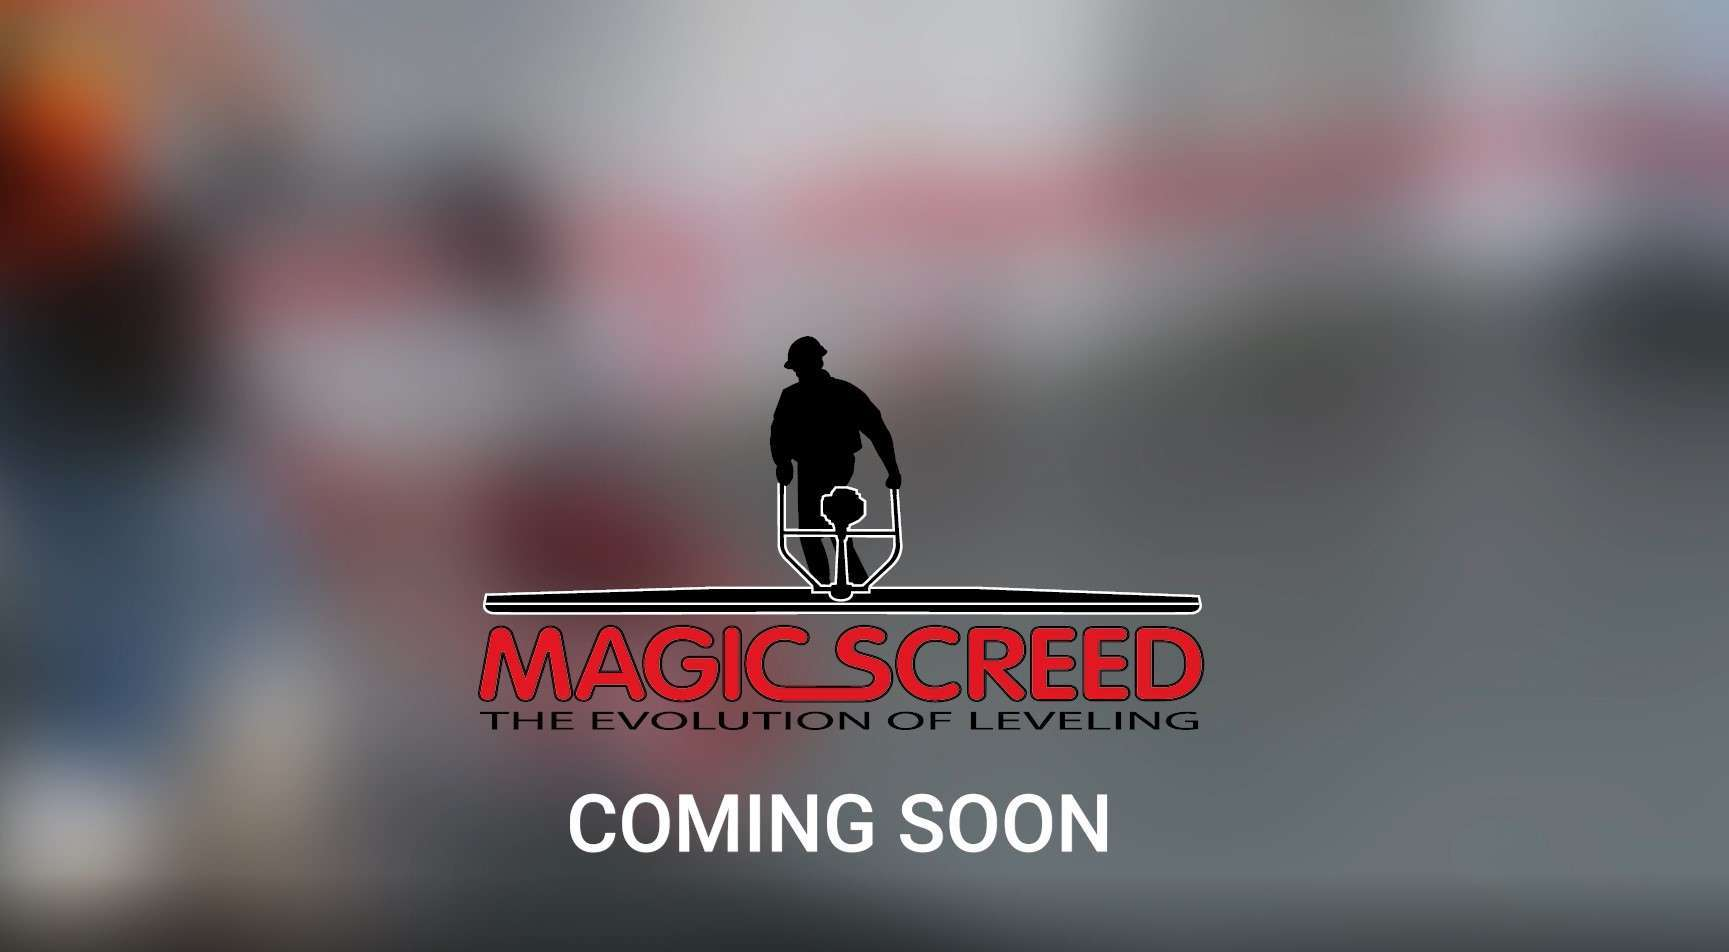 Magic Screed Teaser - cover image